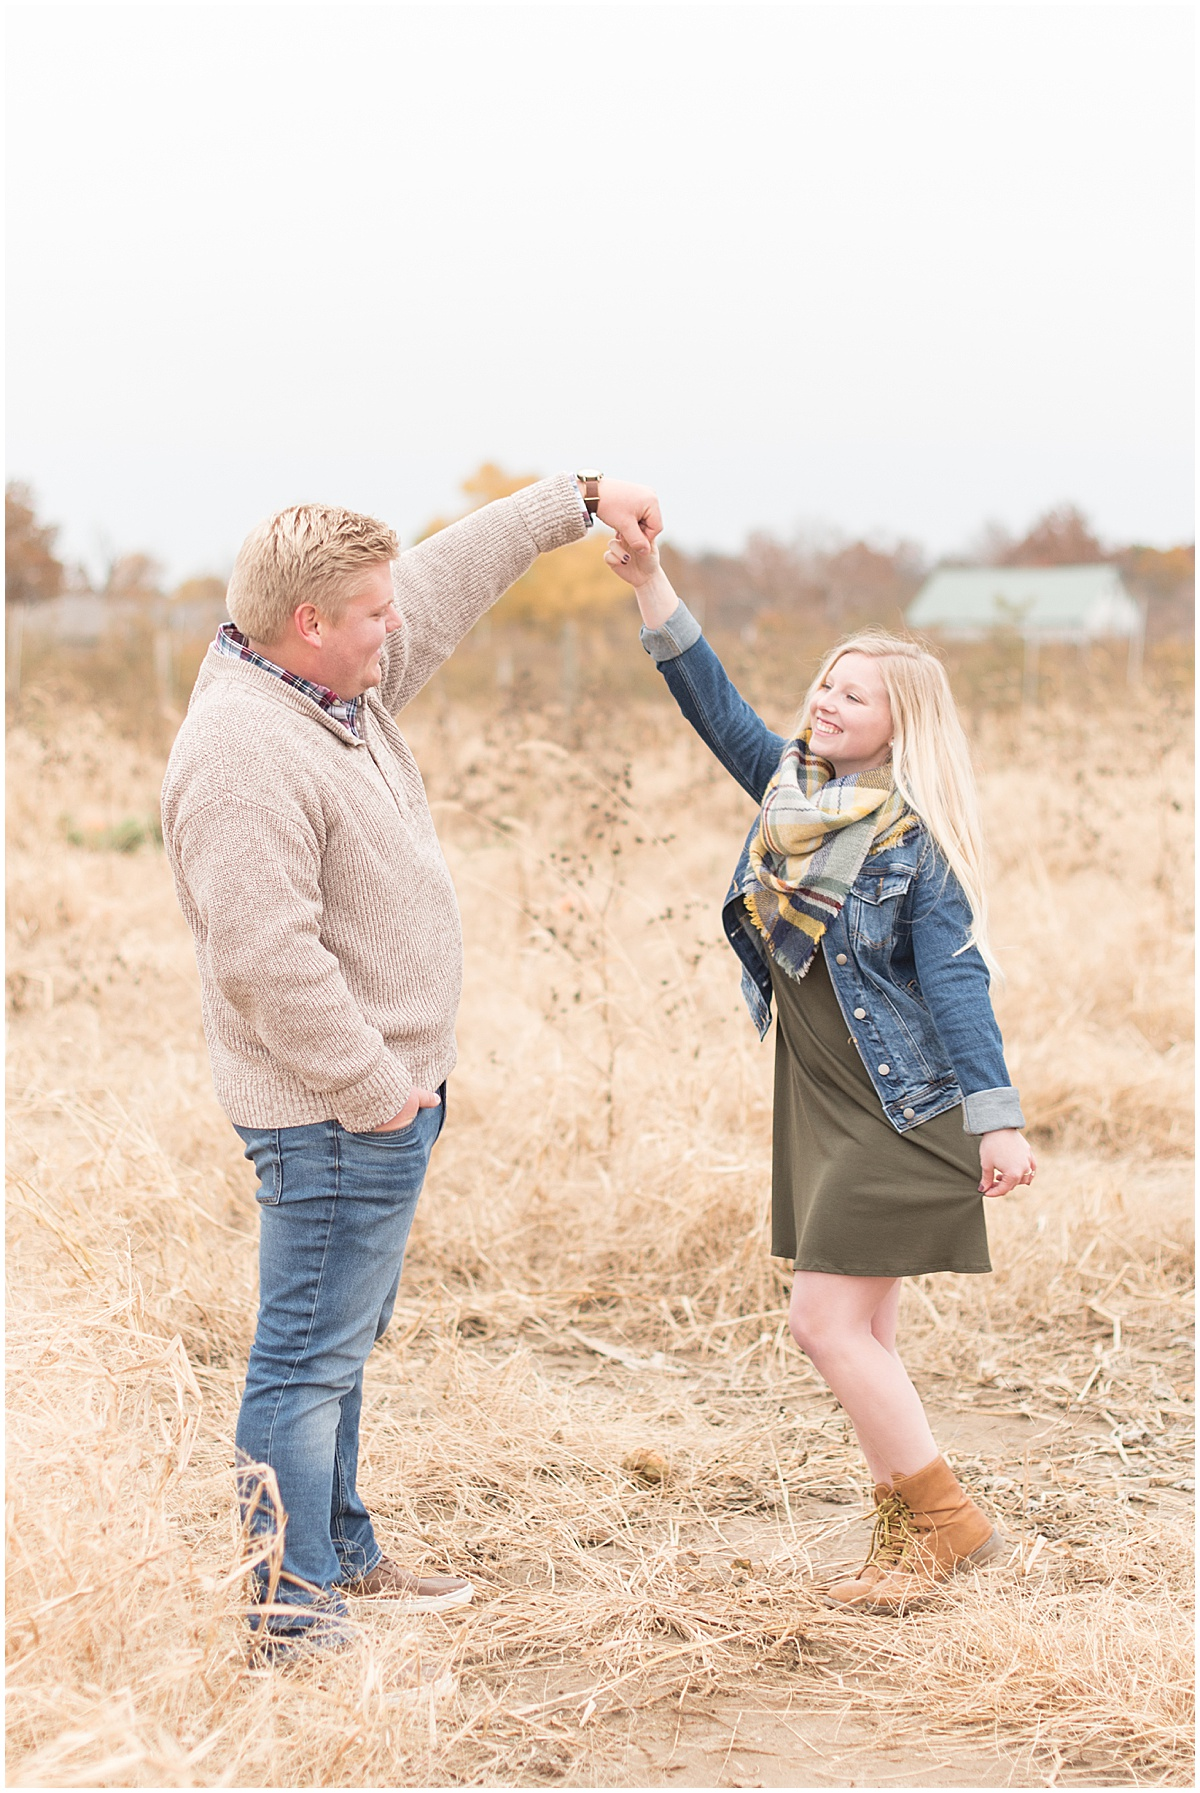 Tyler Van Wanzeele and Baileigh Fleming engagement photos at Wea Creek Orchard in Lafayette Indiana21.jpg